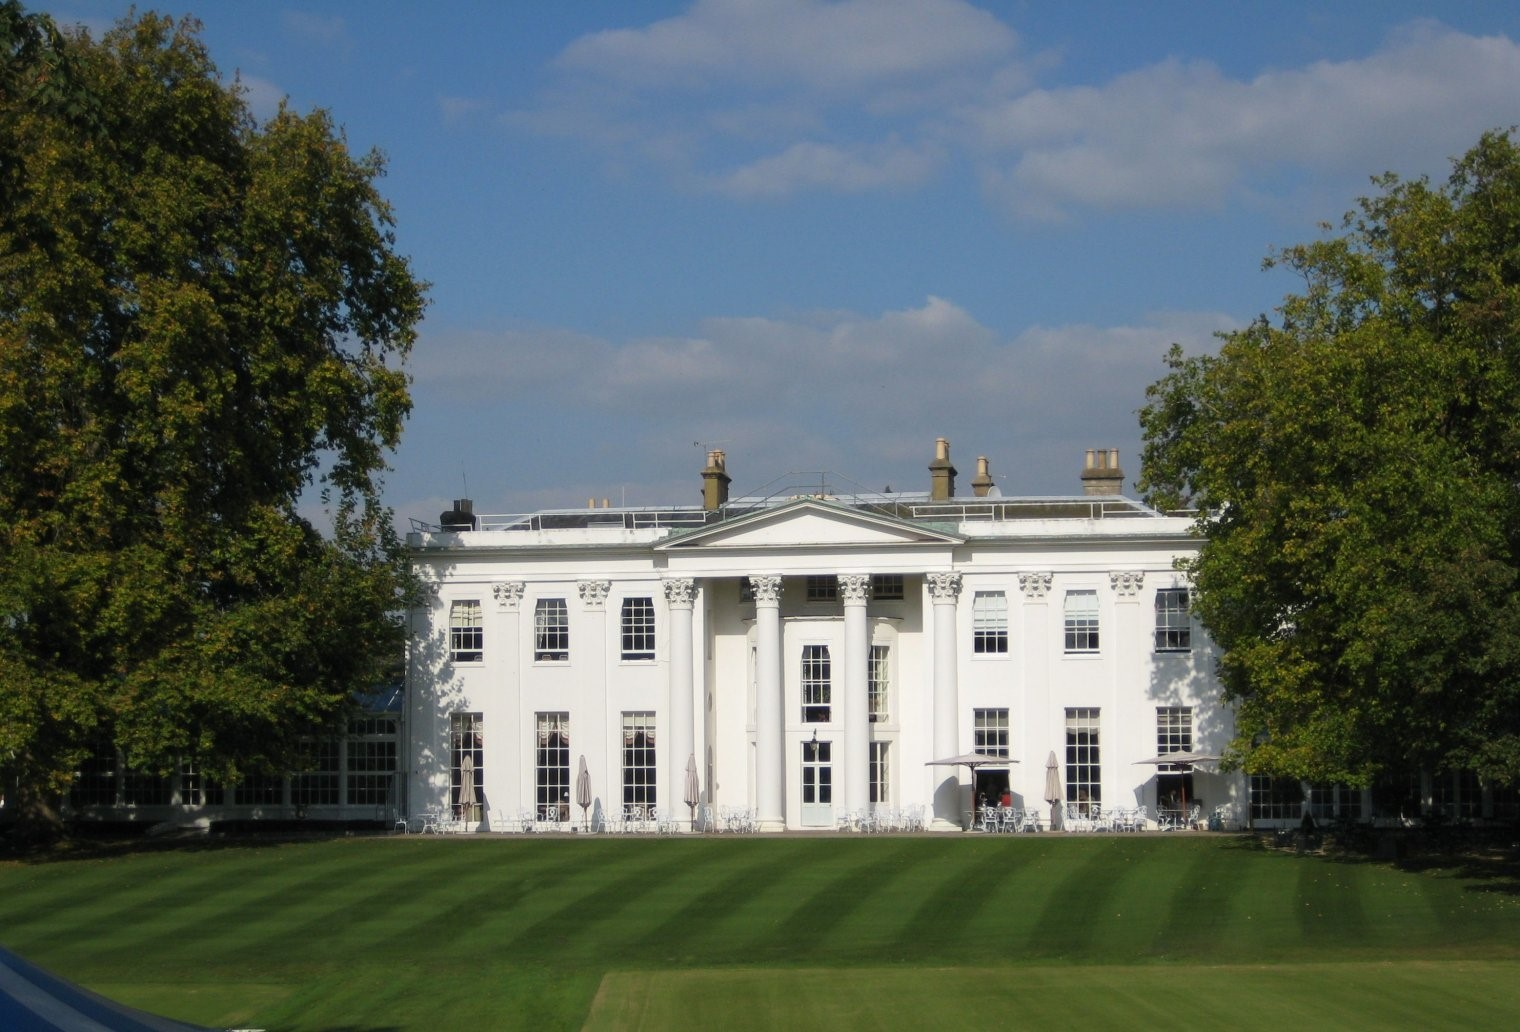 Picture of The Hurlingham Club